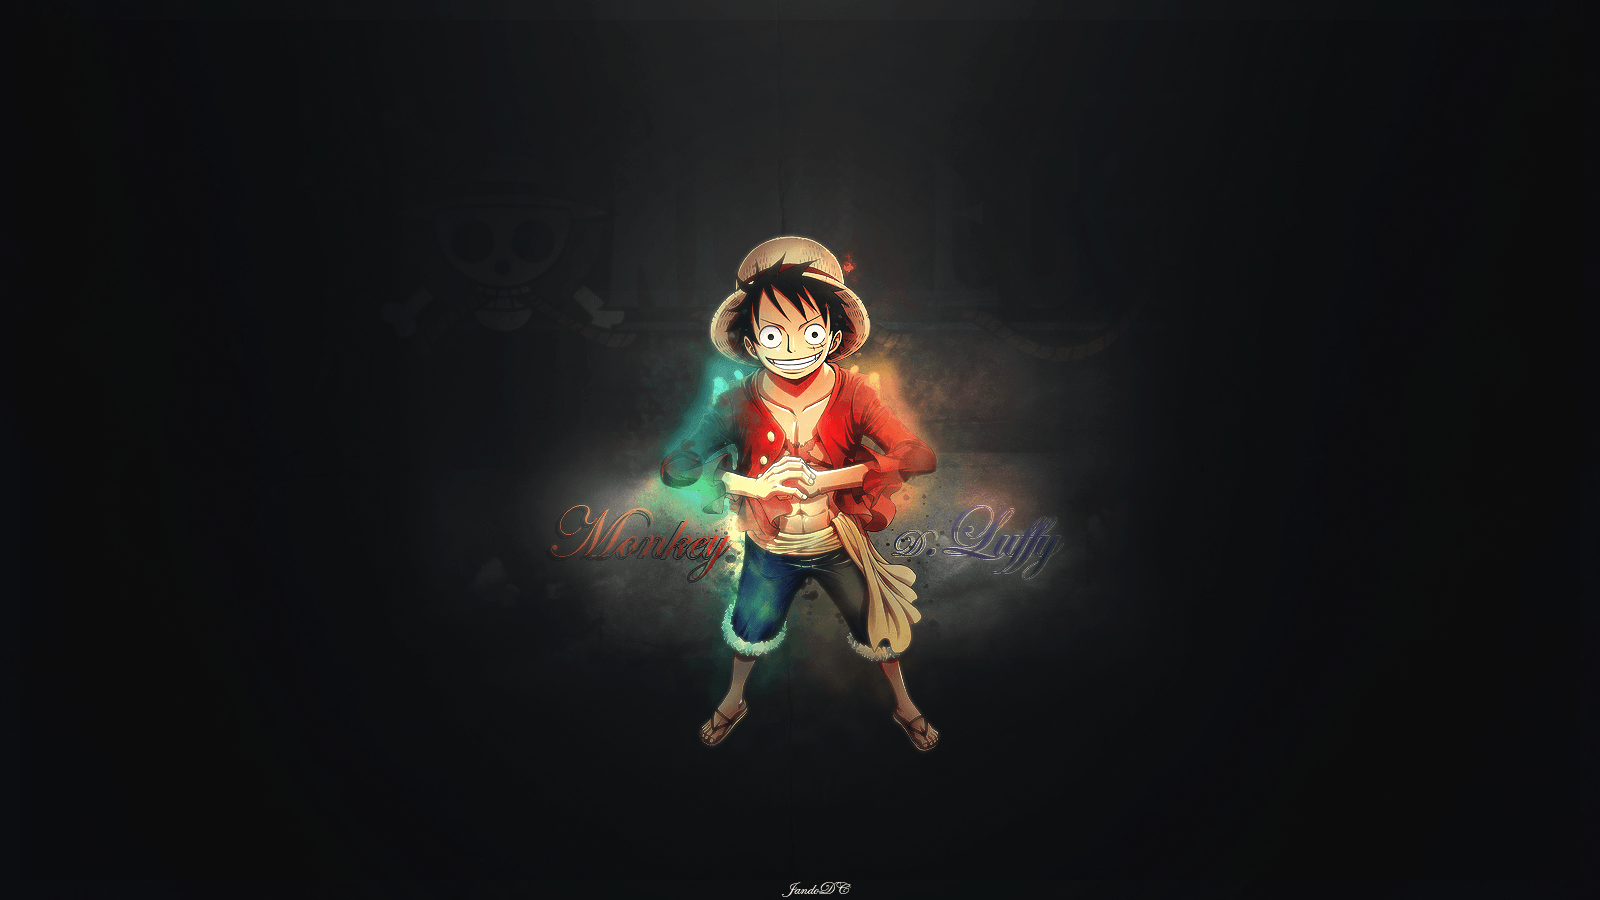 Monkey D Luffy Wallpaper HD